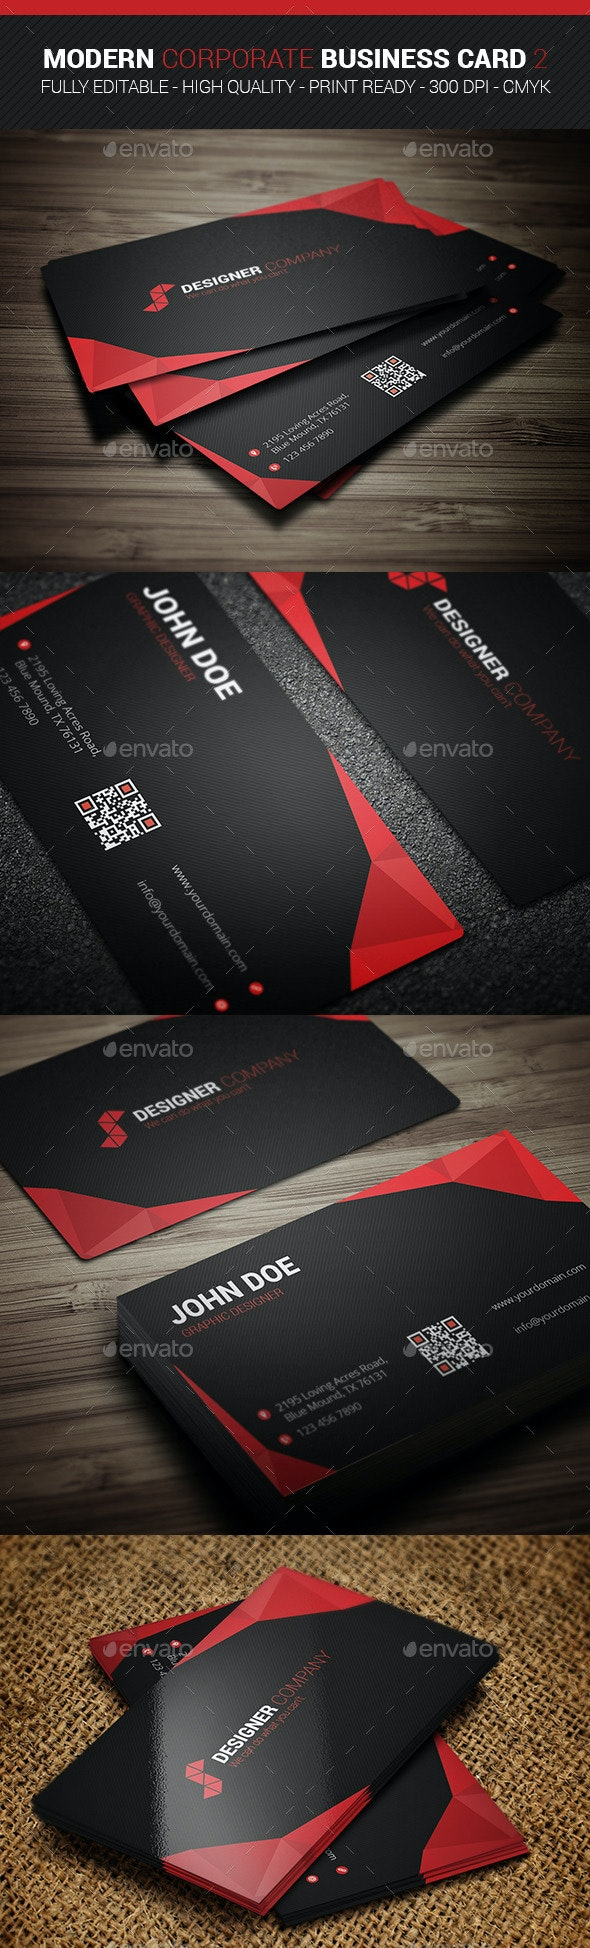 Modern Corporate Business Card 2 - Business Cards Print Templates